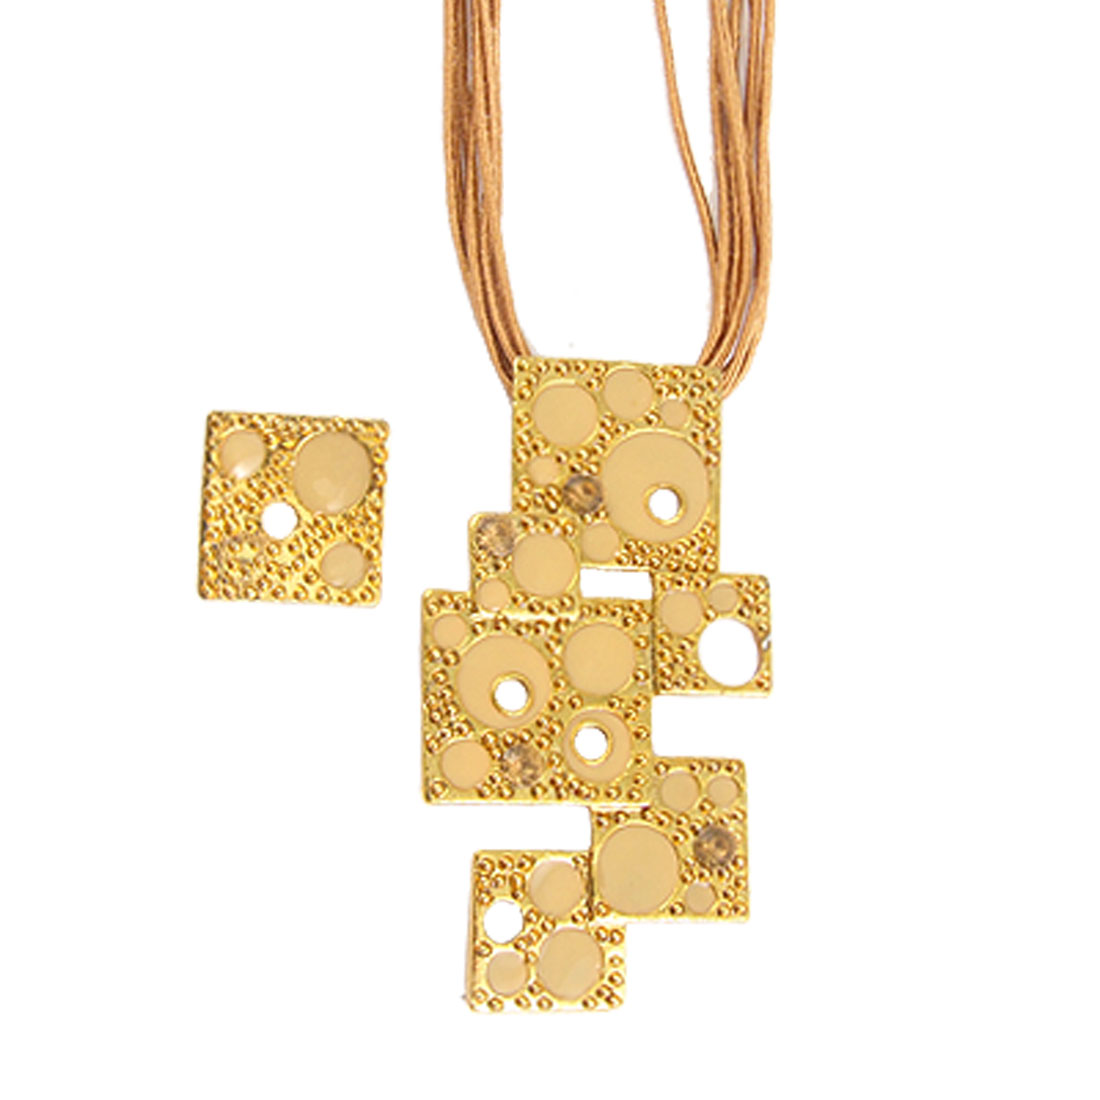 Square Linked Pendant Brown Multi Strands Necklace w Earrings